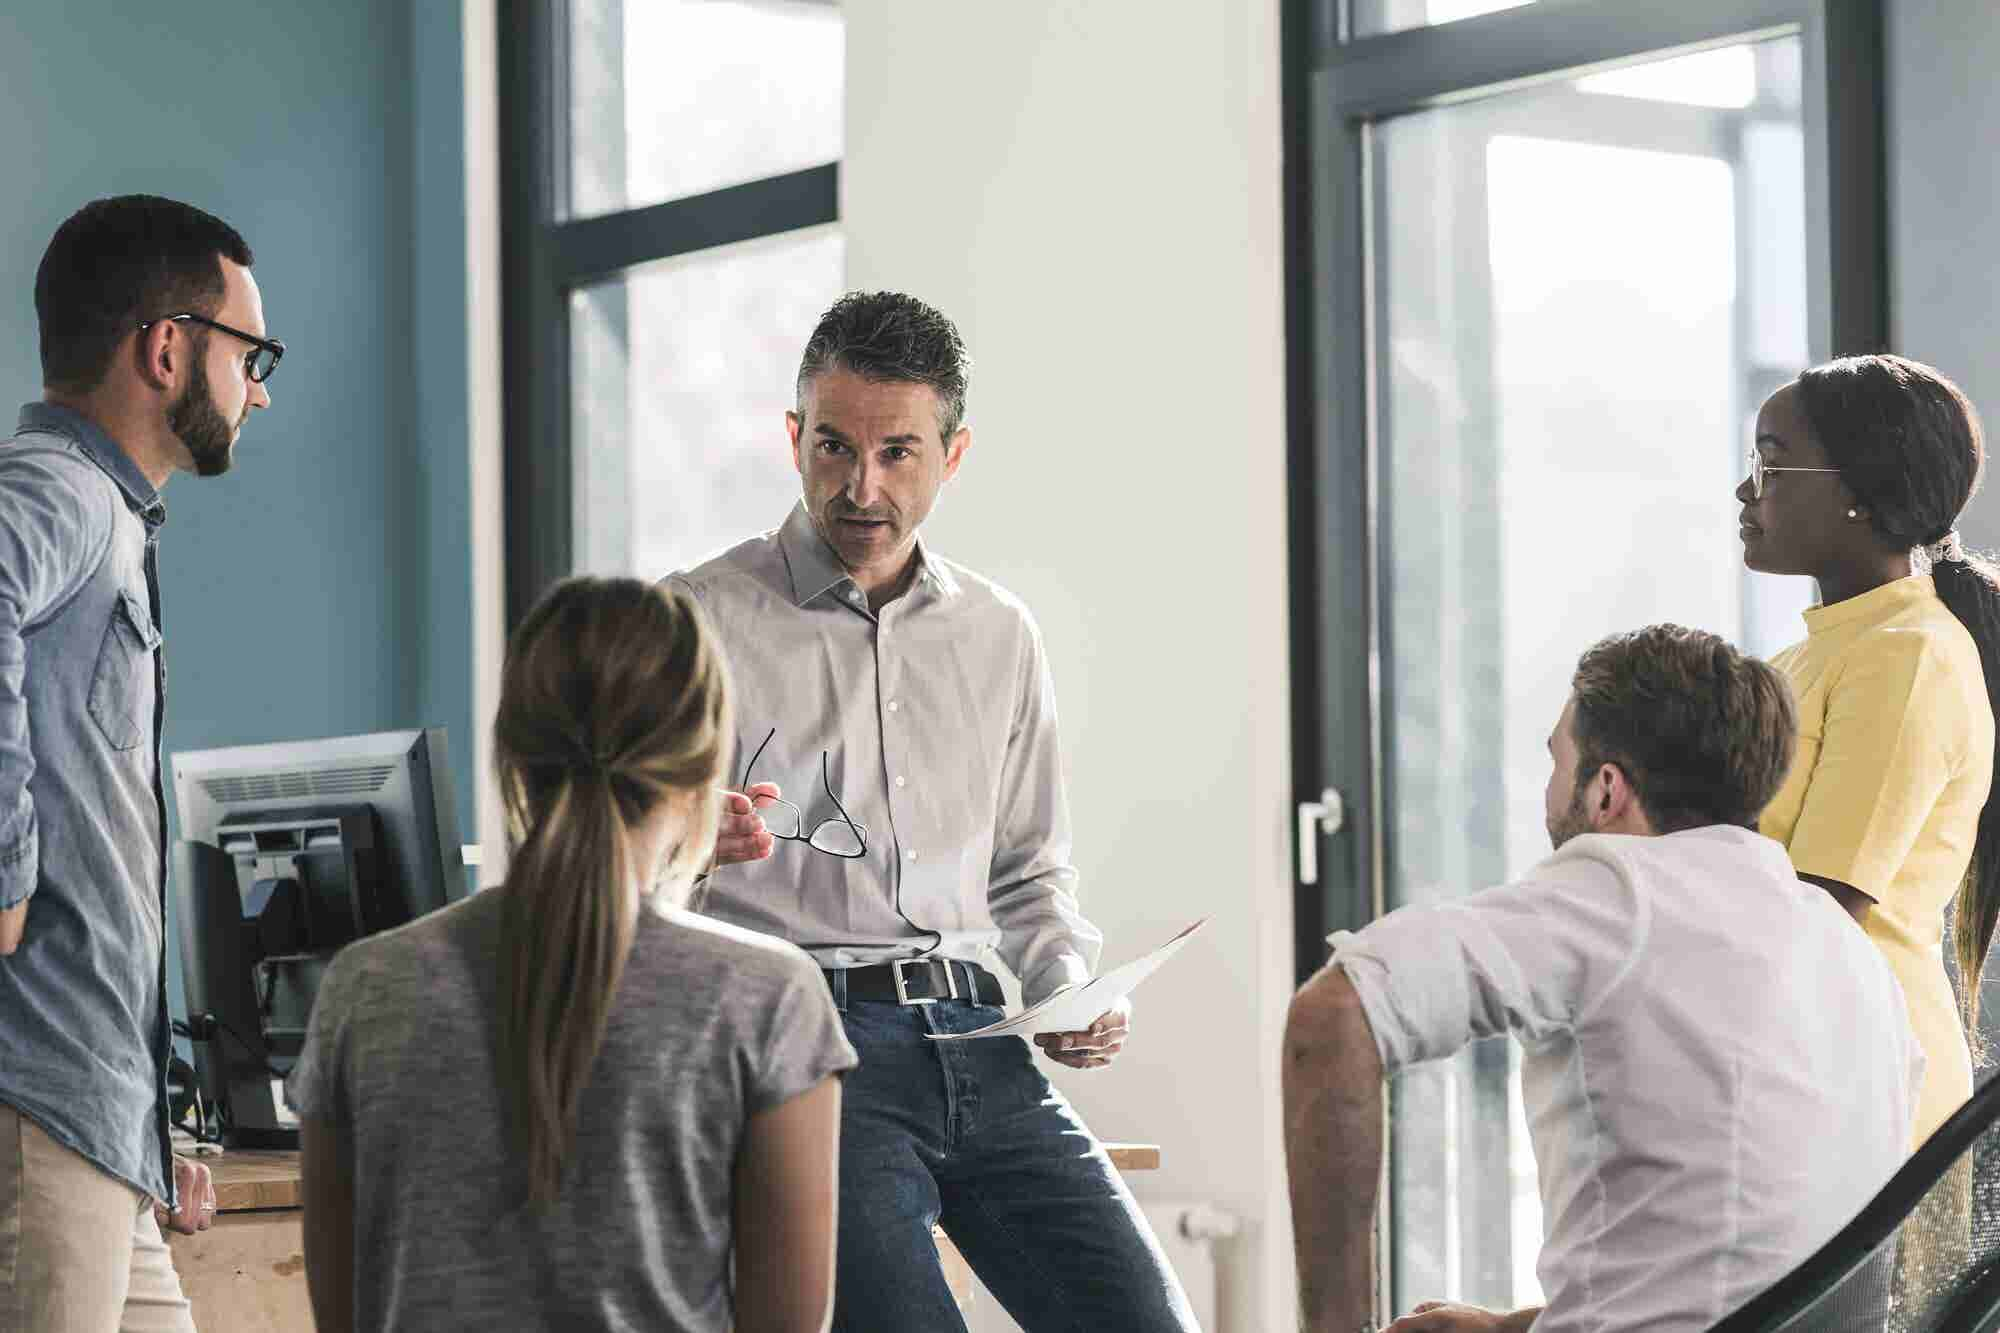 Rallying Employees to Embrace New Management Practices